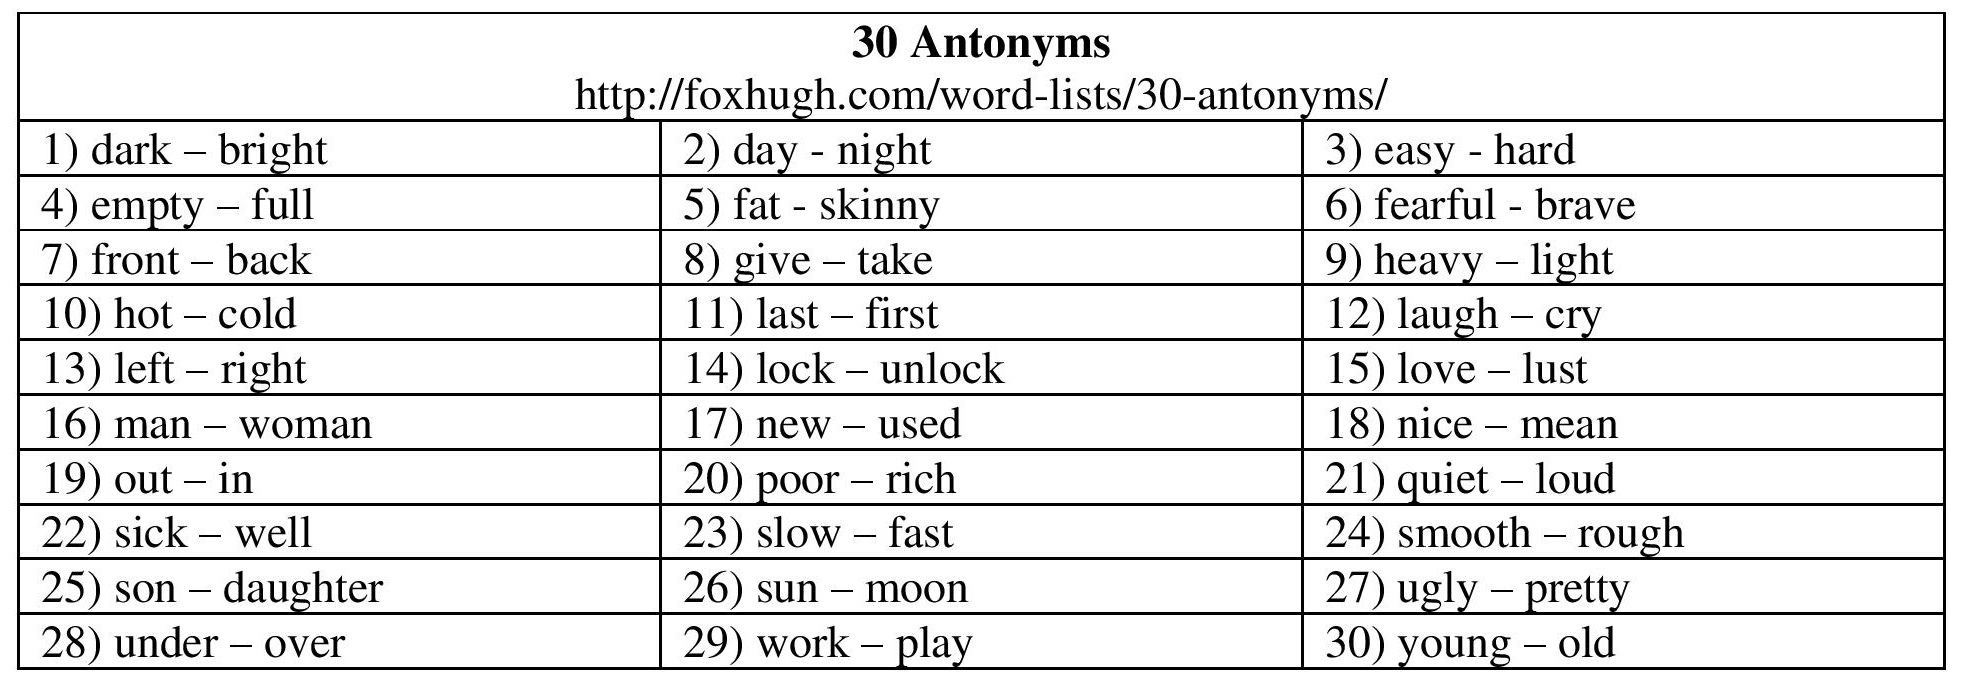 30 Antonyms Hugh Fox Iii